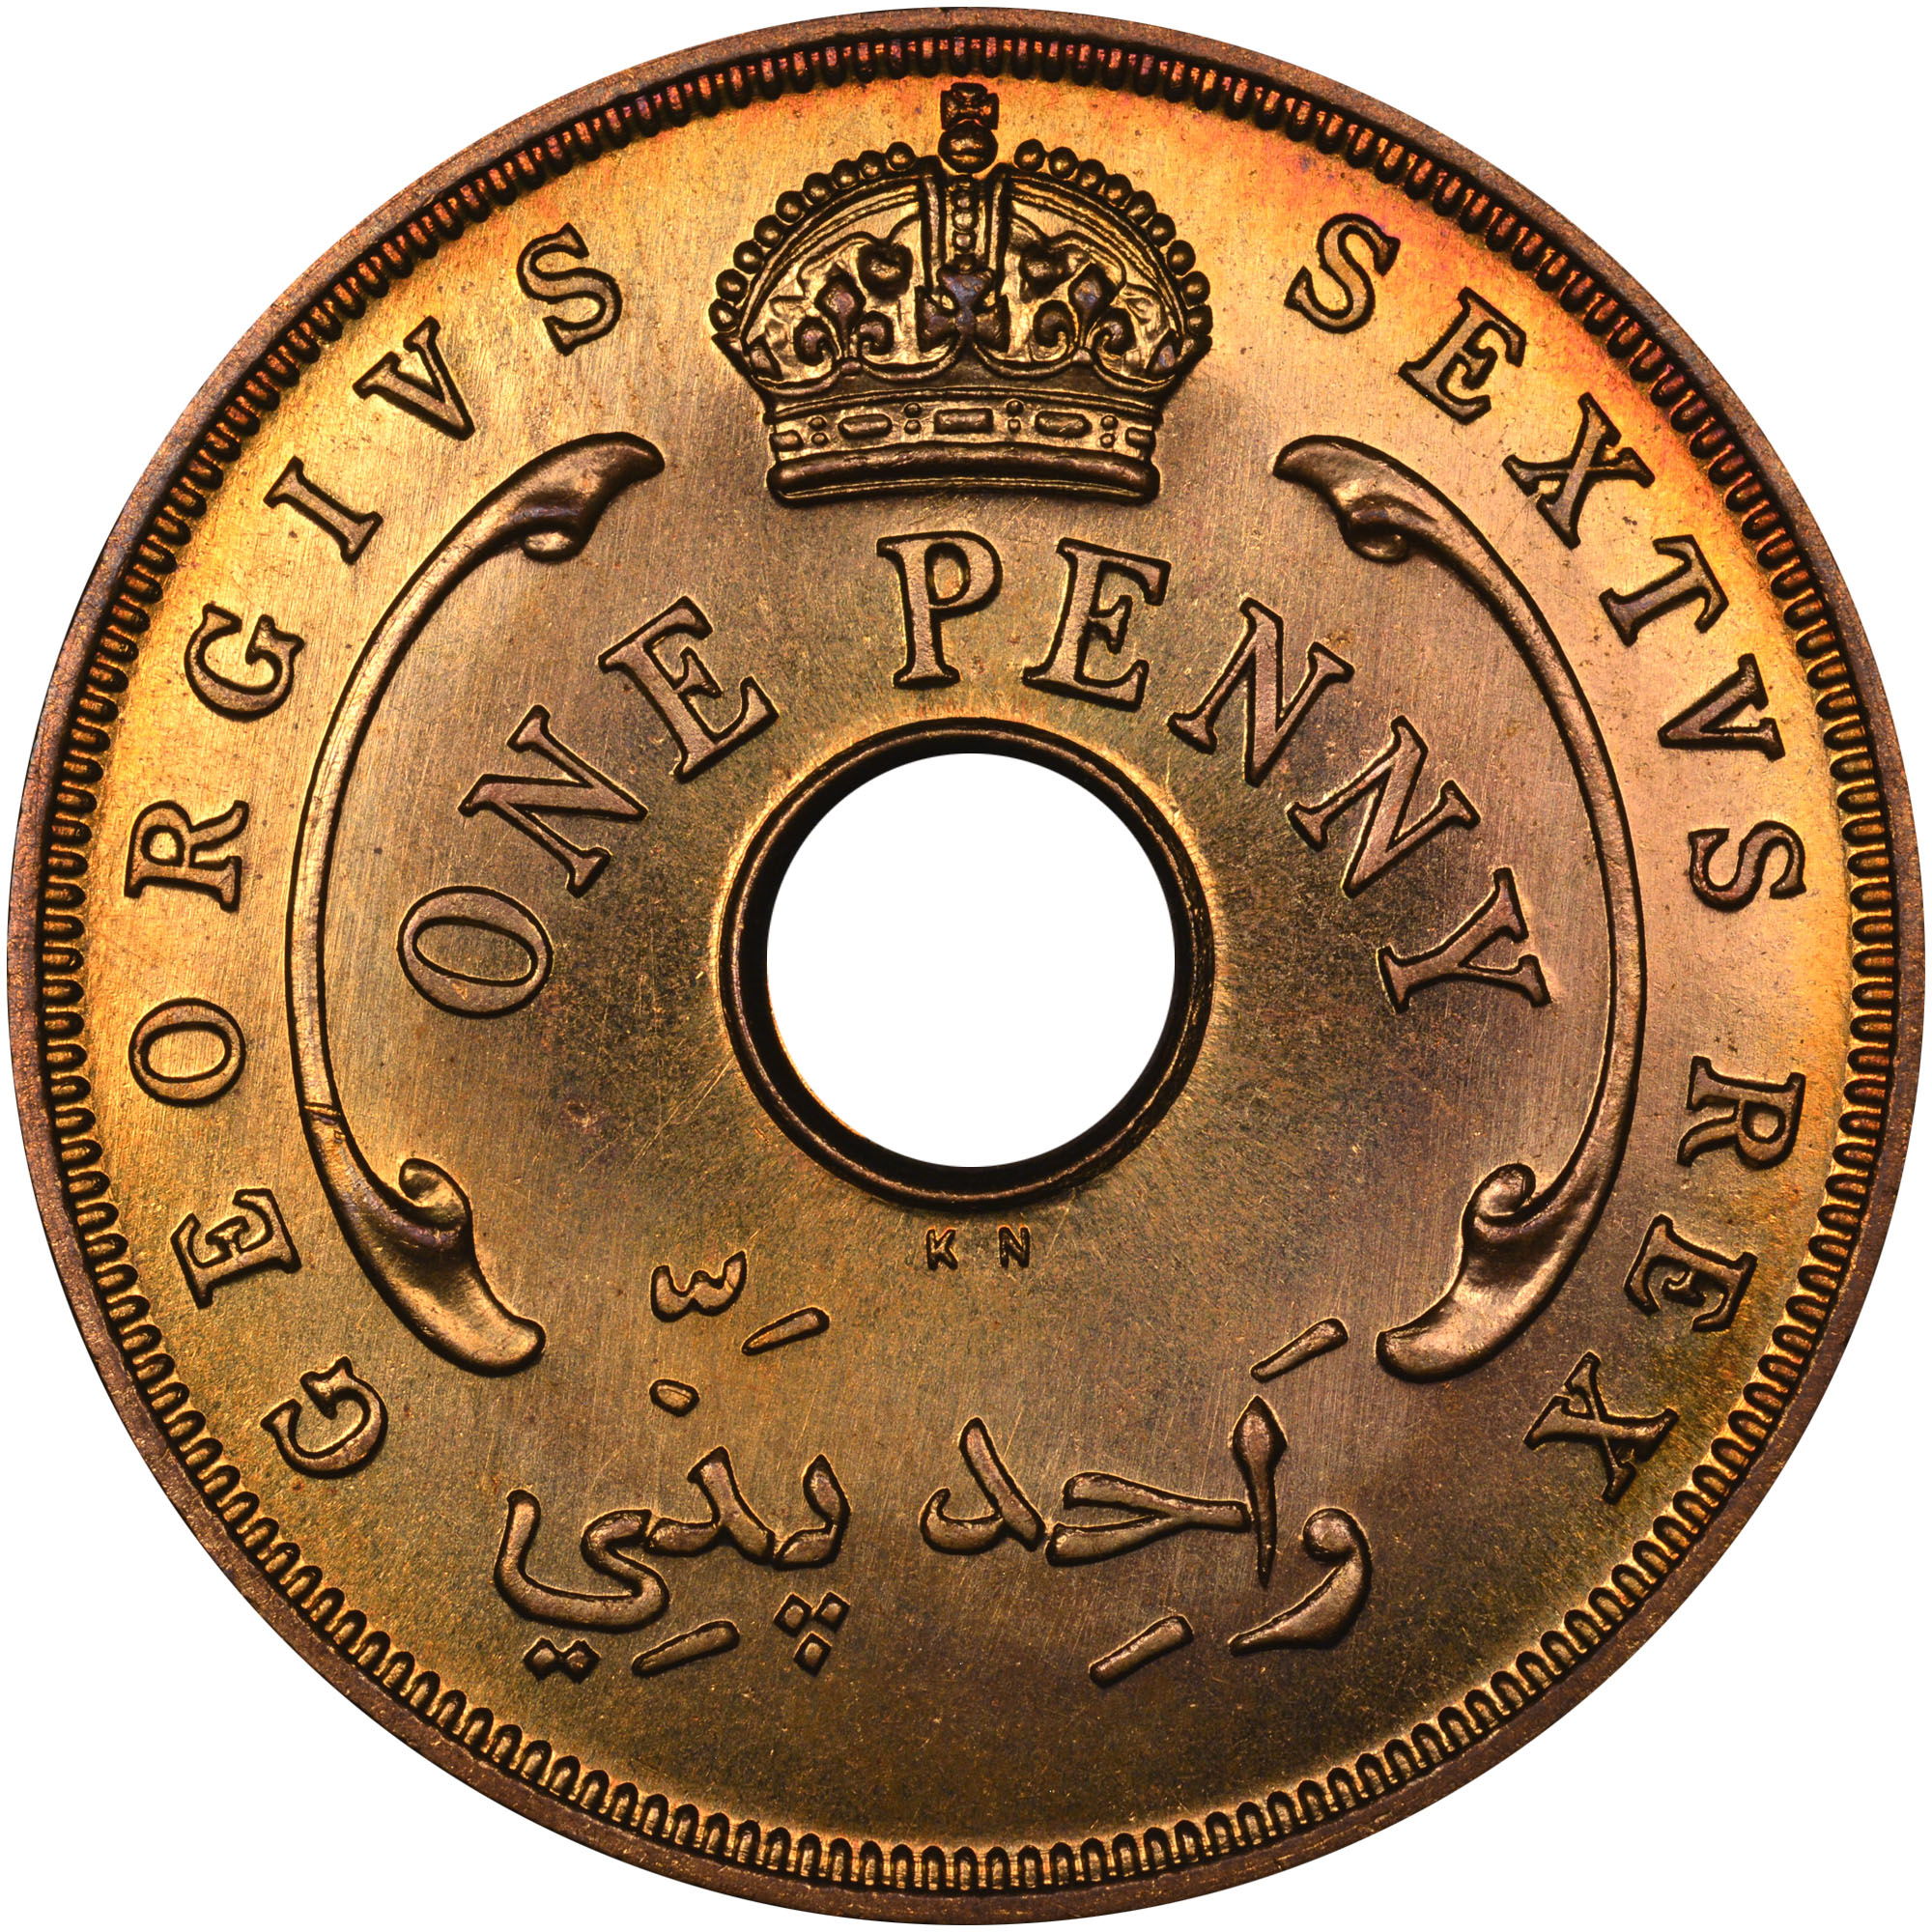 1952 British West Africa Penny obverse